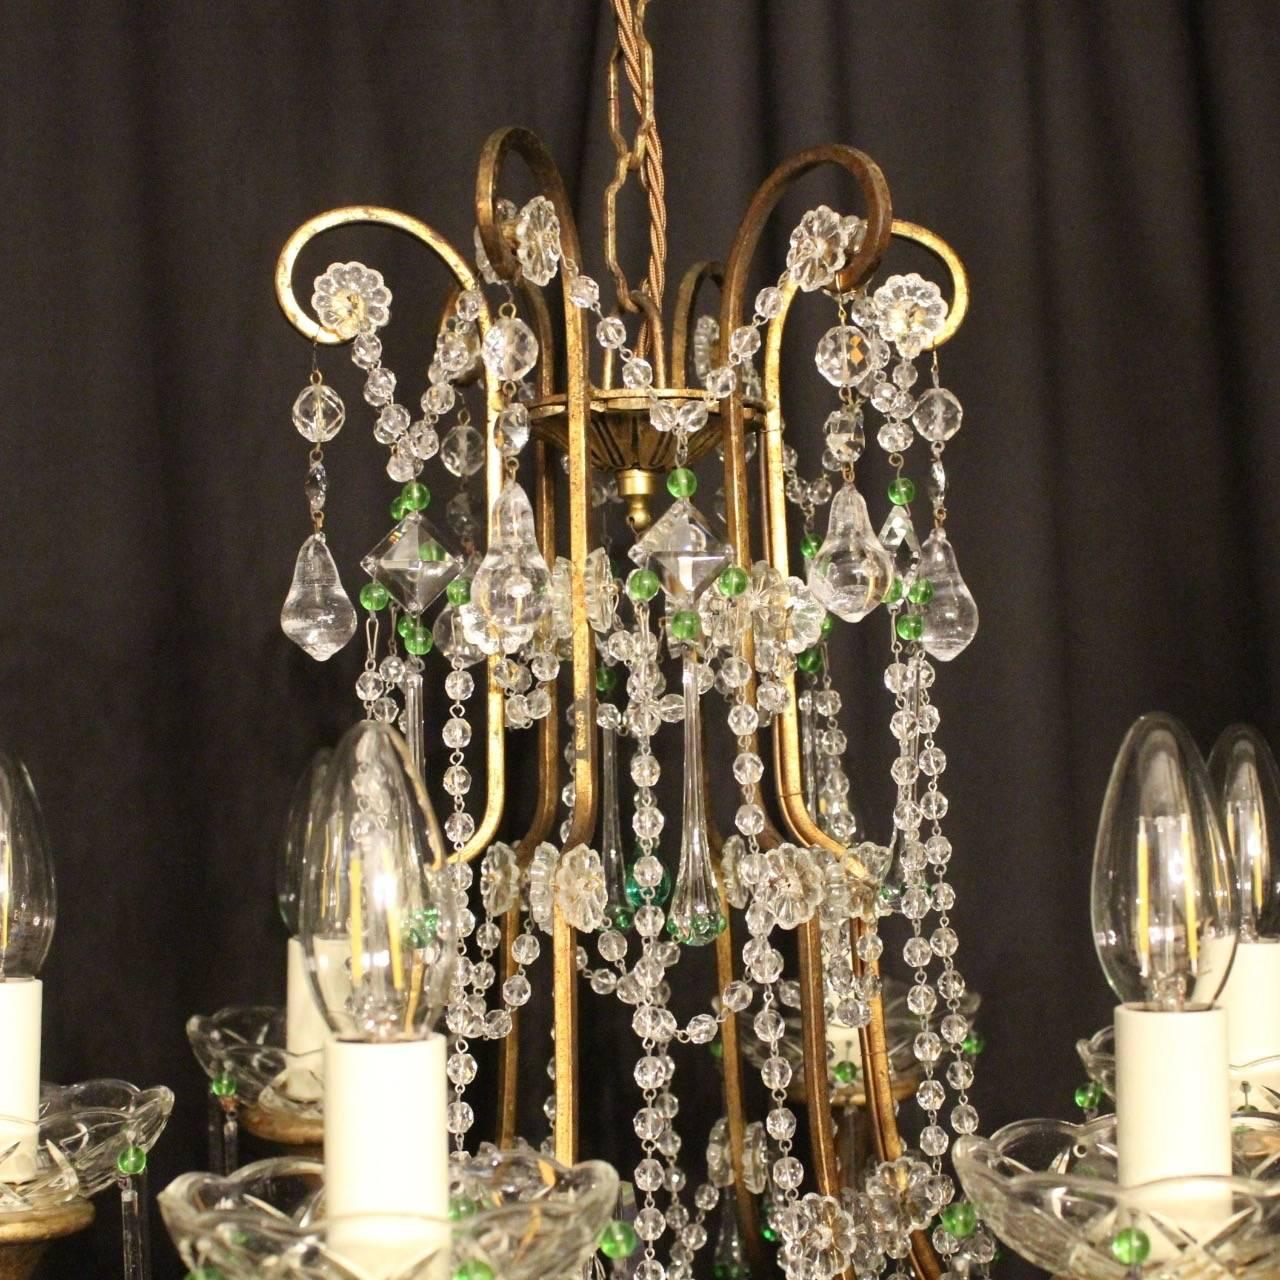 Italian florentine six light cage chandelier for sale at 1stdibs arubaitofo Image collections